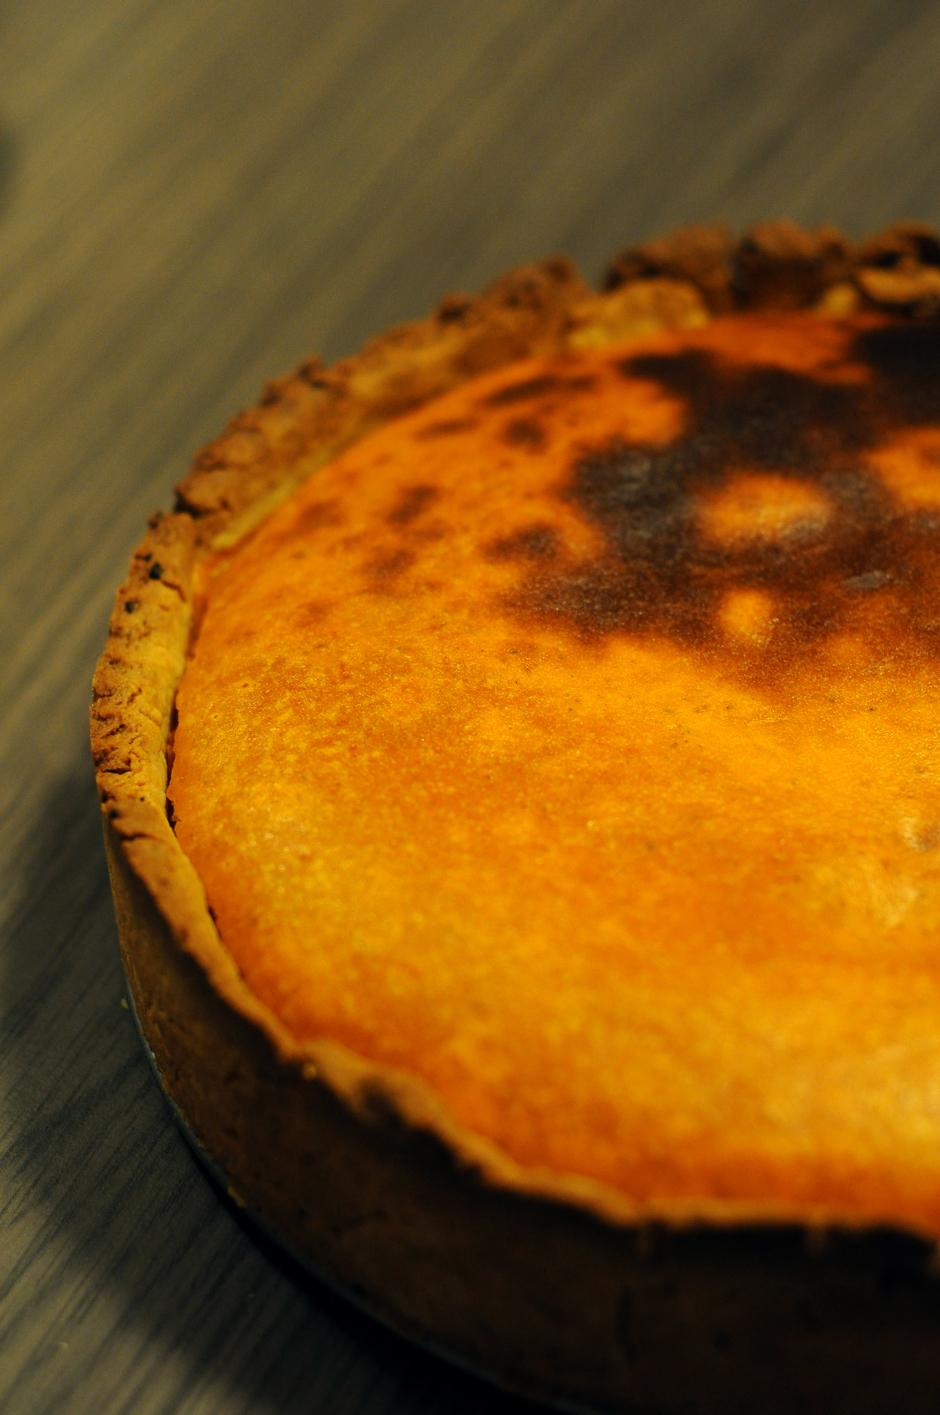 Les Papotages de Nana - Pumpkin Pie